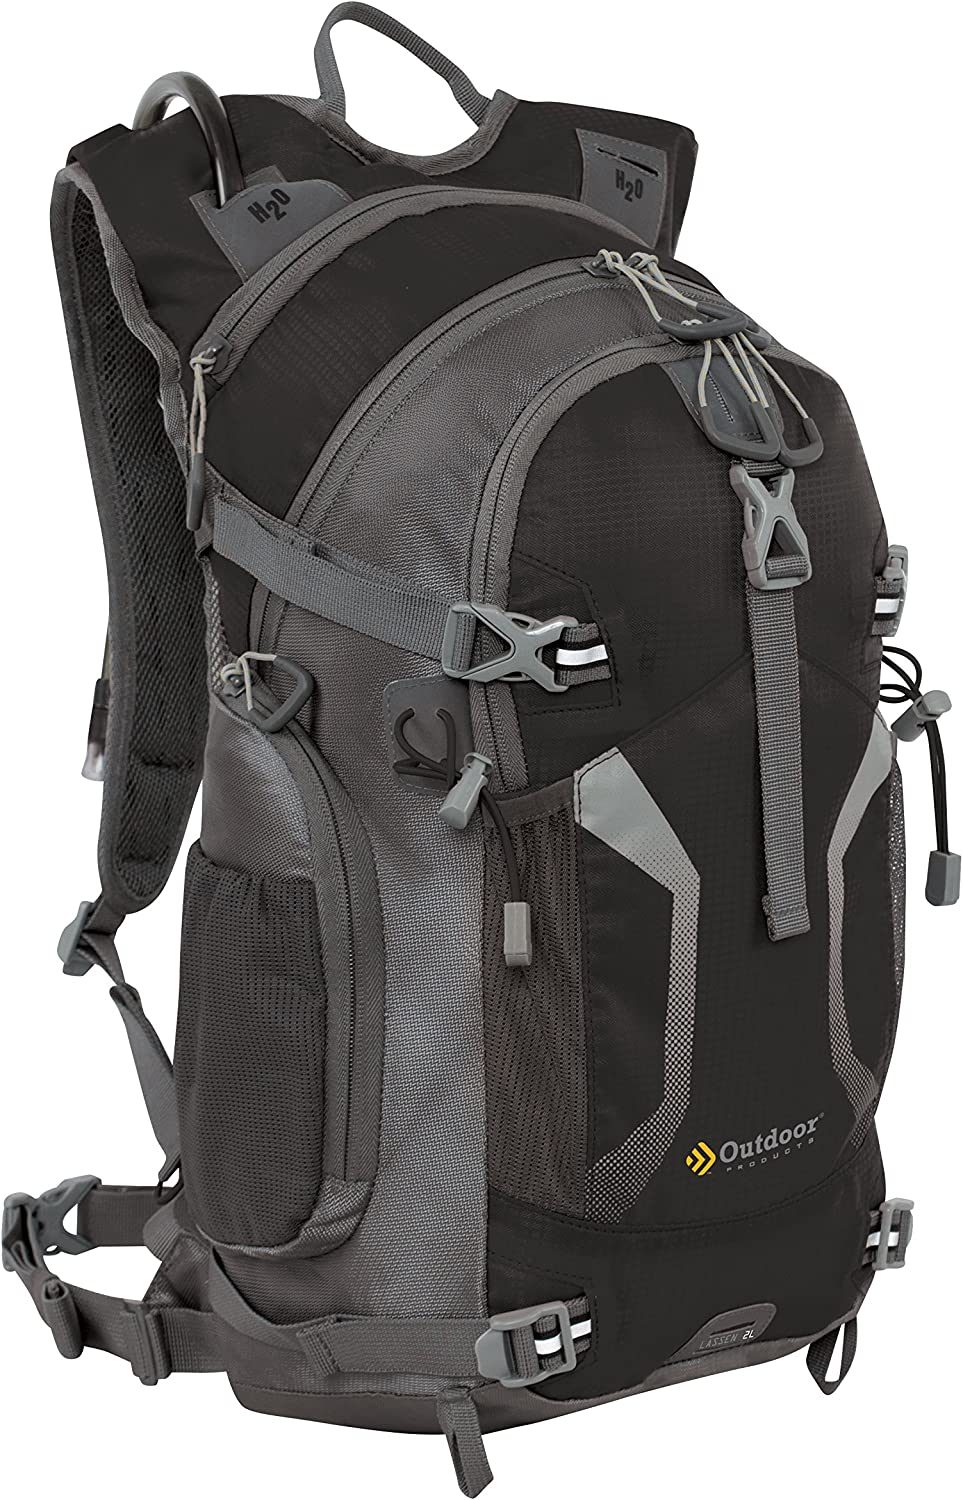 Outdoor Products Lassen Hydration Pack